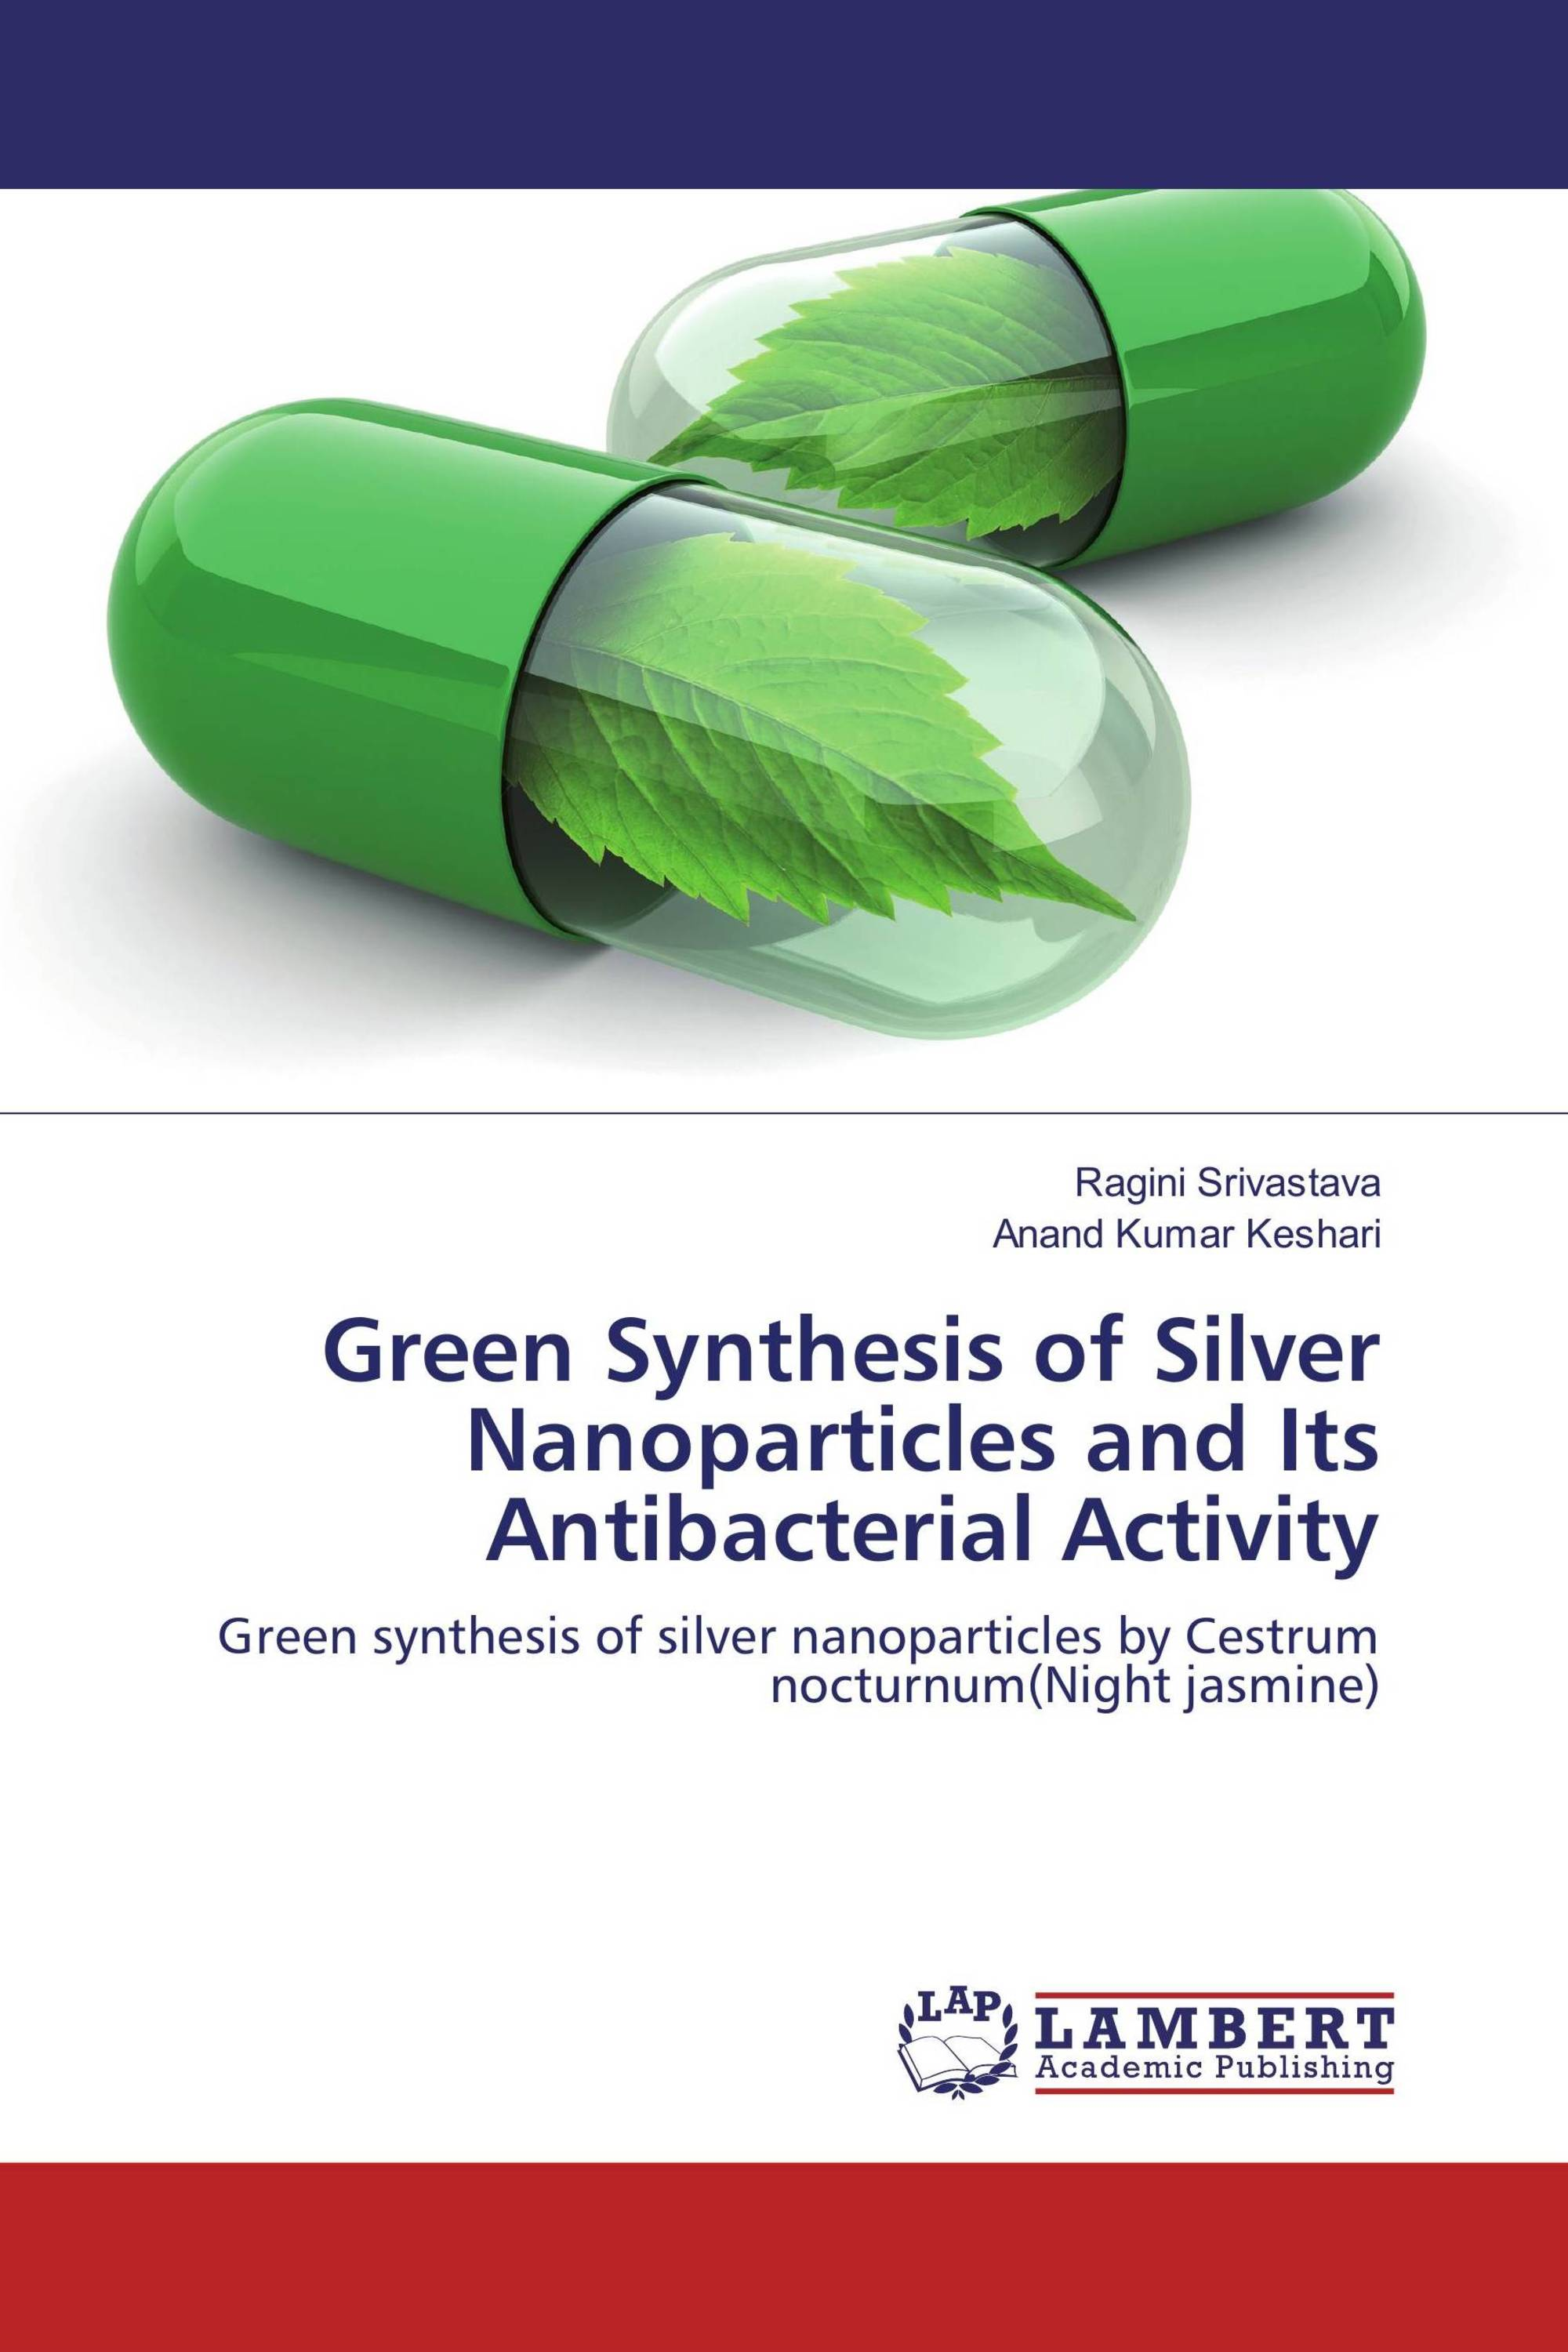 silver nanoparticle synthesis thesis Silver nanoparticles: synthesis, properties, toxicology, applications and perspectives quang huy tran 1,  coriandrum sativum mediated synthesis of silver nanoparticles and evaluation of their biological characteristics n senthilkumar et al 2018 materials research express 5 055032.